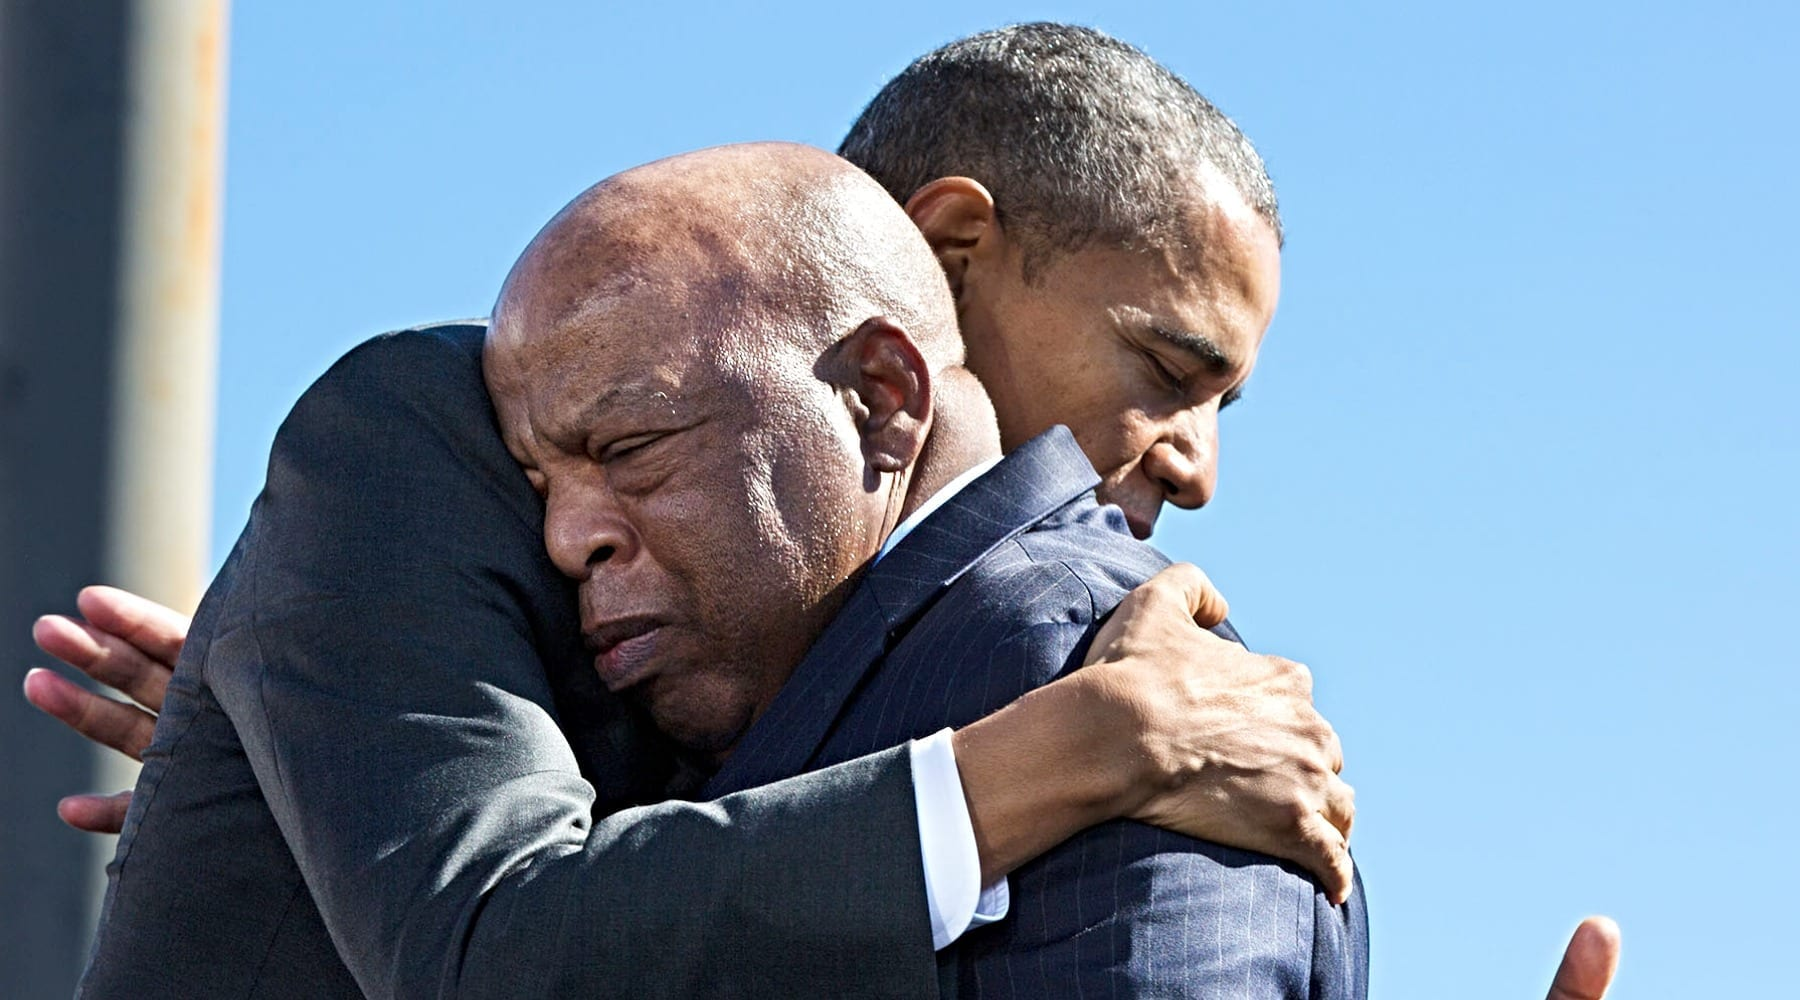 Recalling John Lewis: 'We Have Come Too Far'